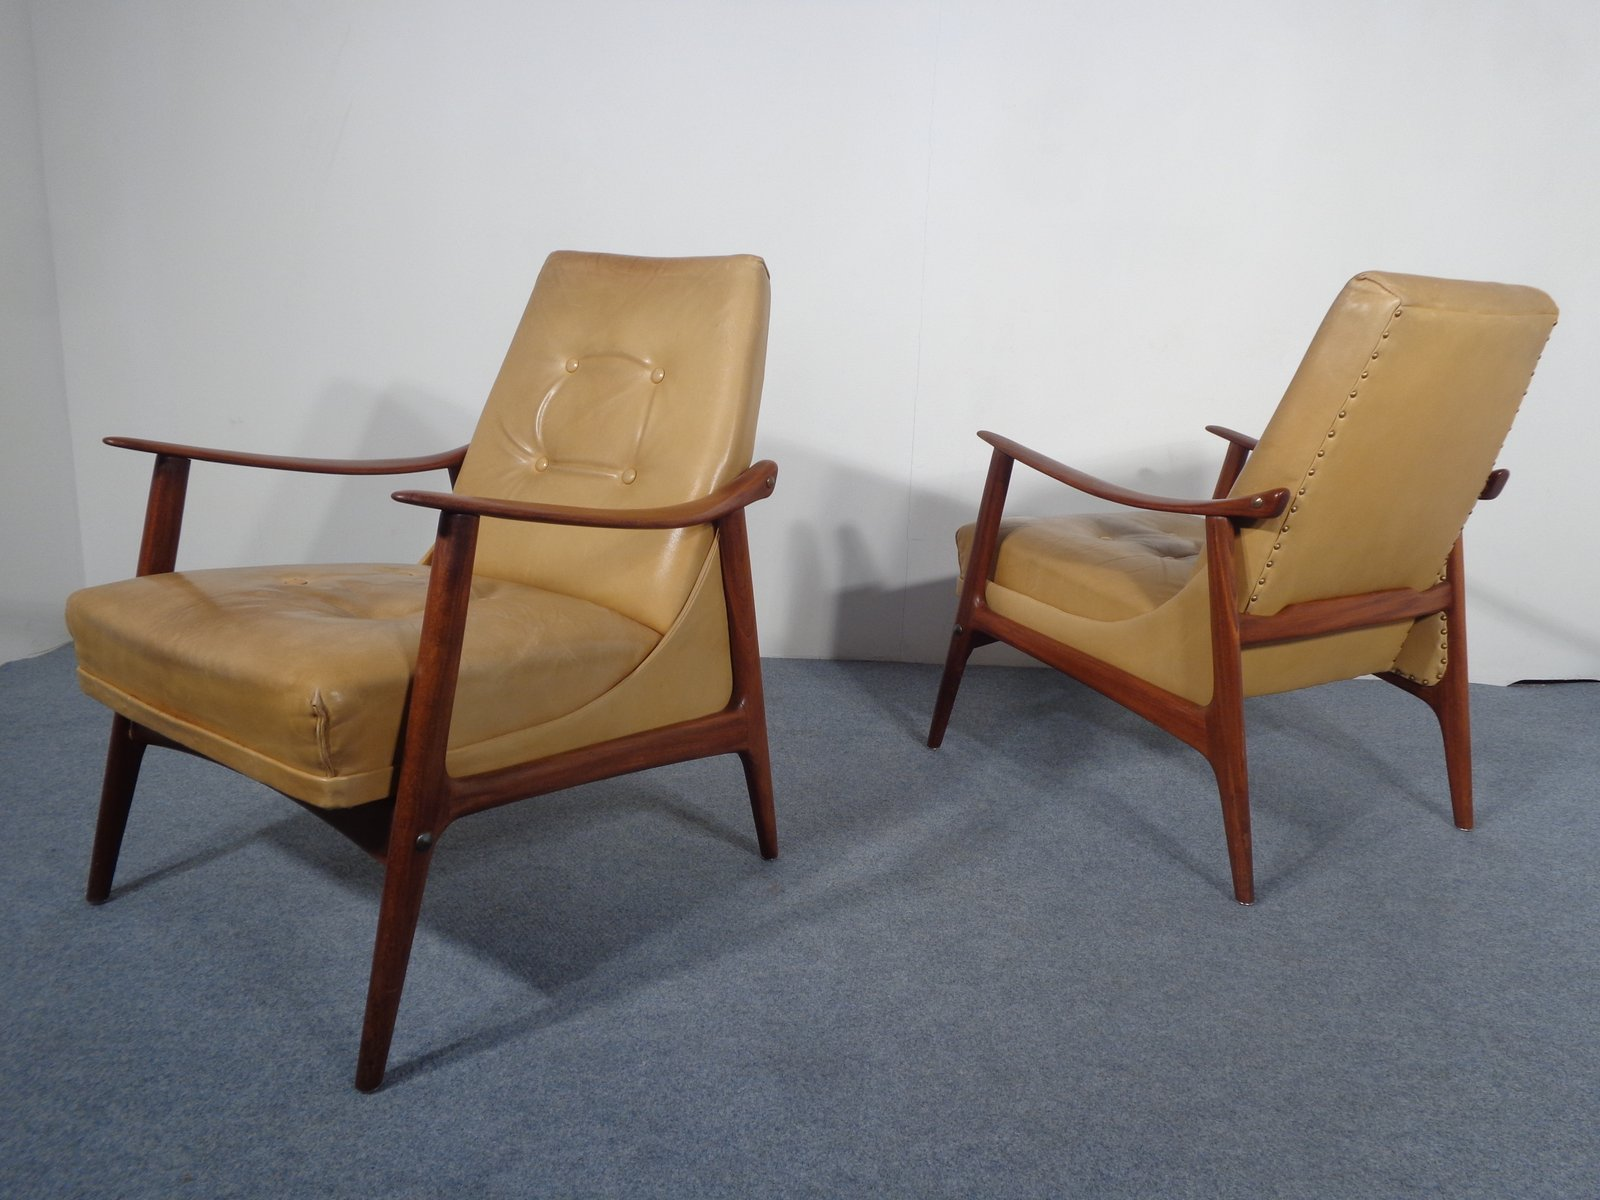 Vintage Danish Teak & Leather Lounge Chair for sale at Pamono